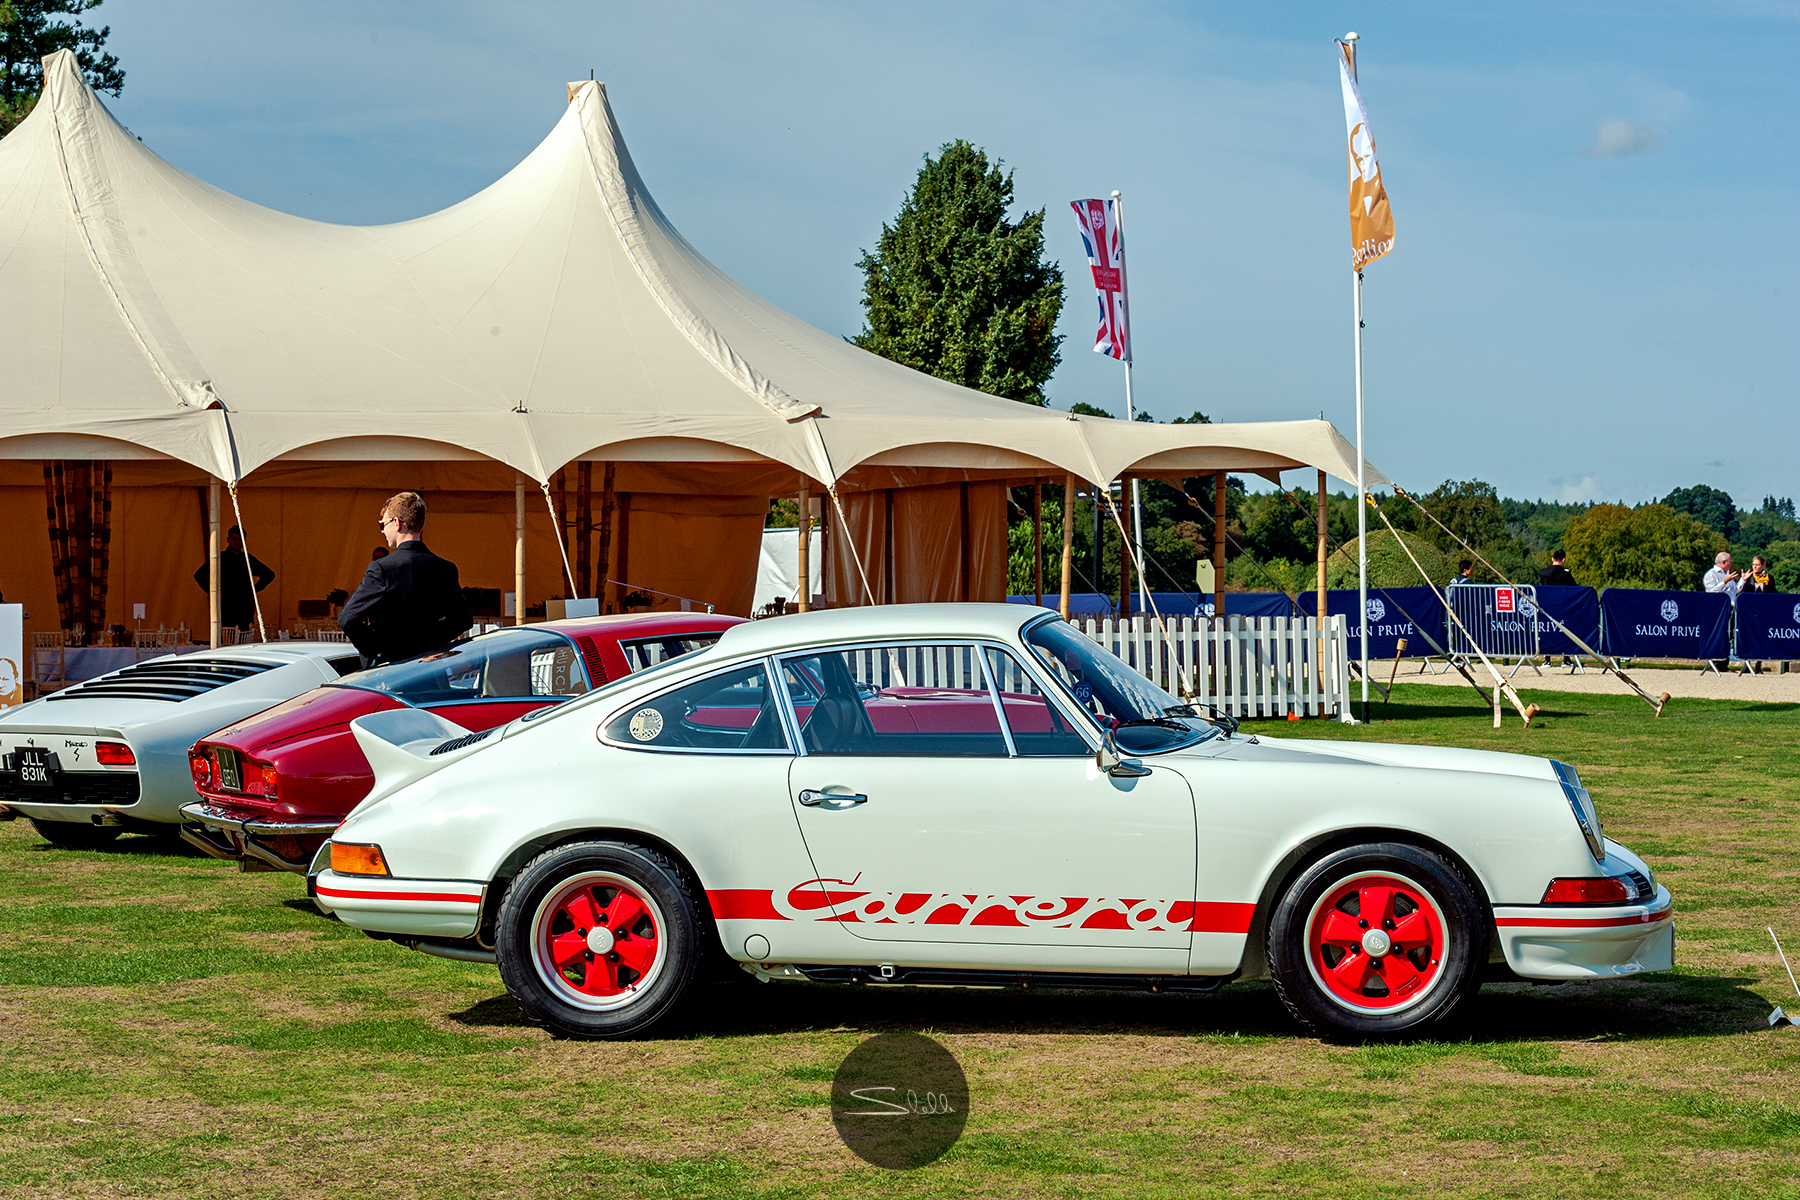 Stella Scordellis Salon Prive 2018 29 Watermarked.jpg